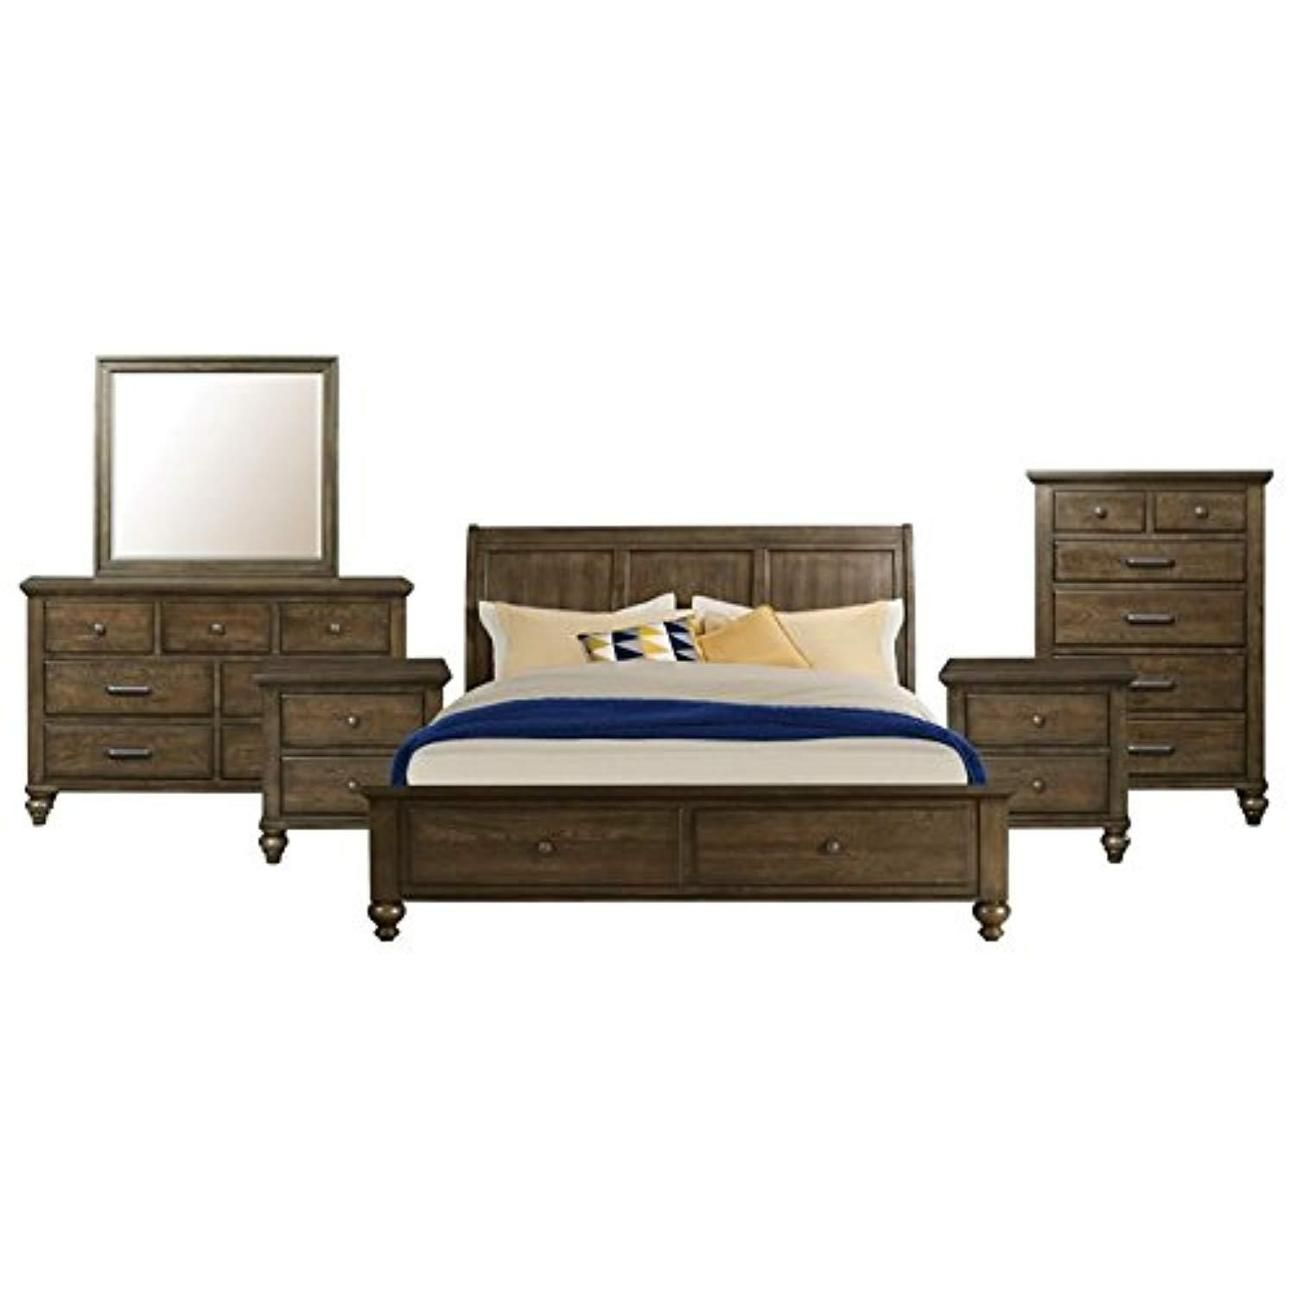 harmony home goods | bedroom furniture sets